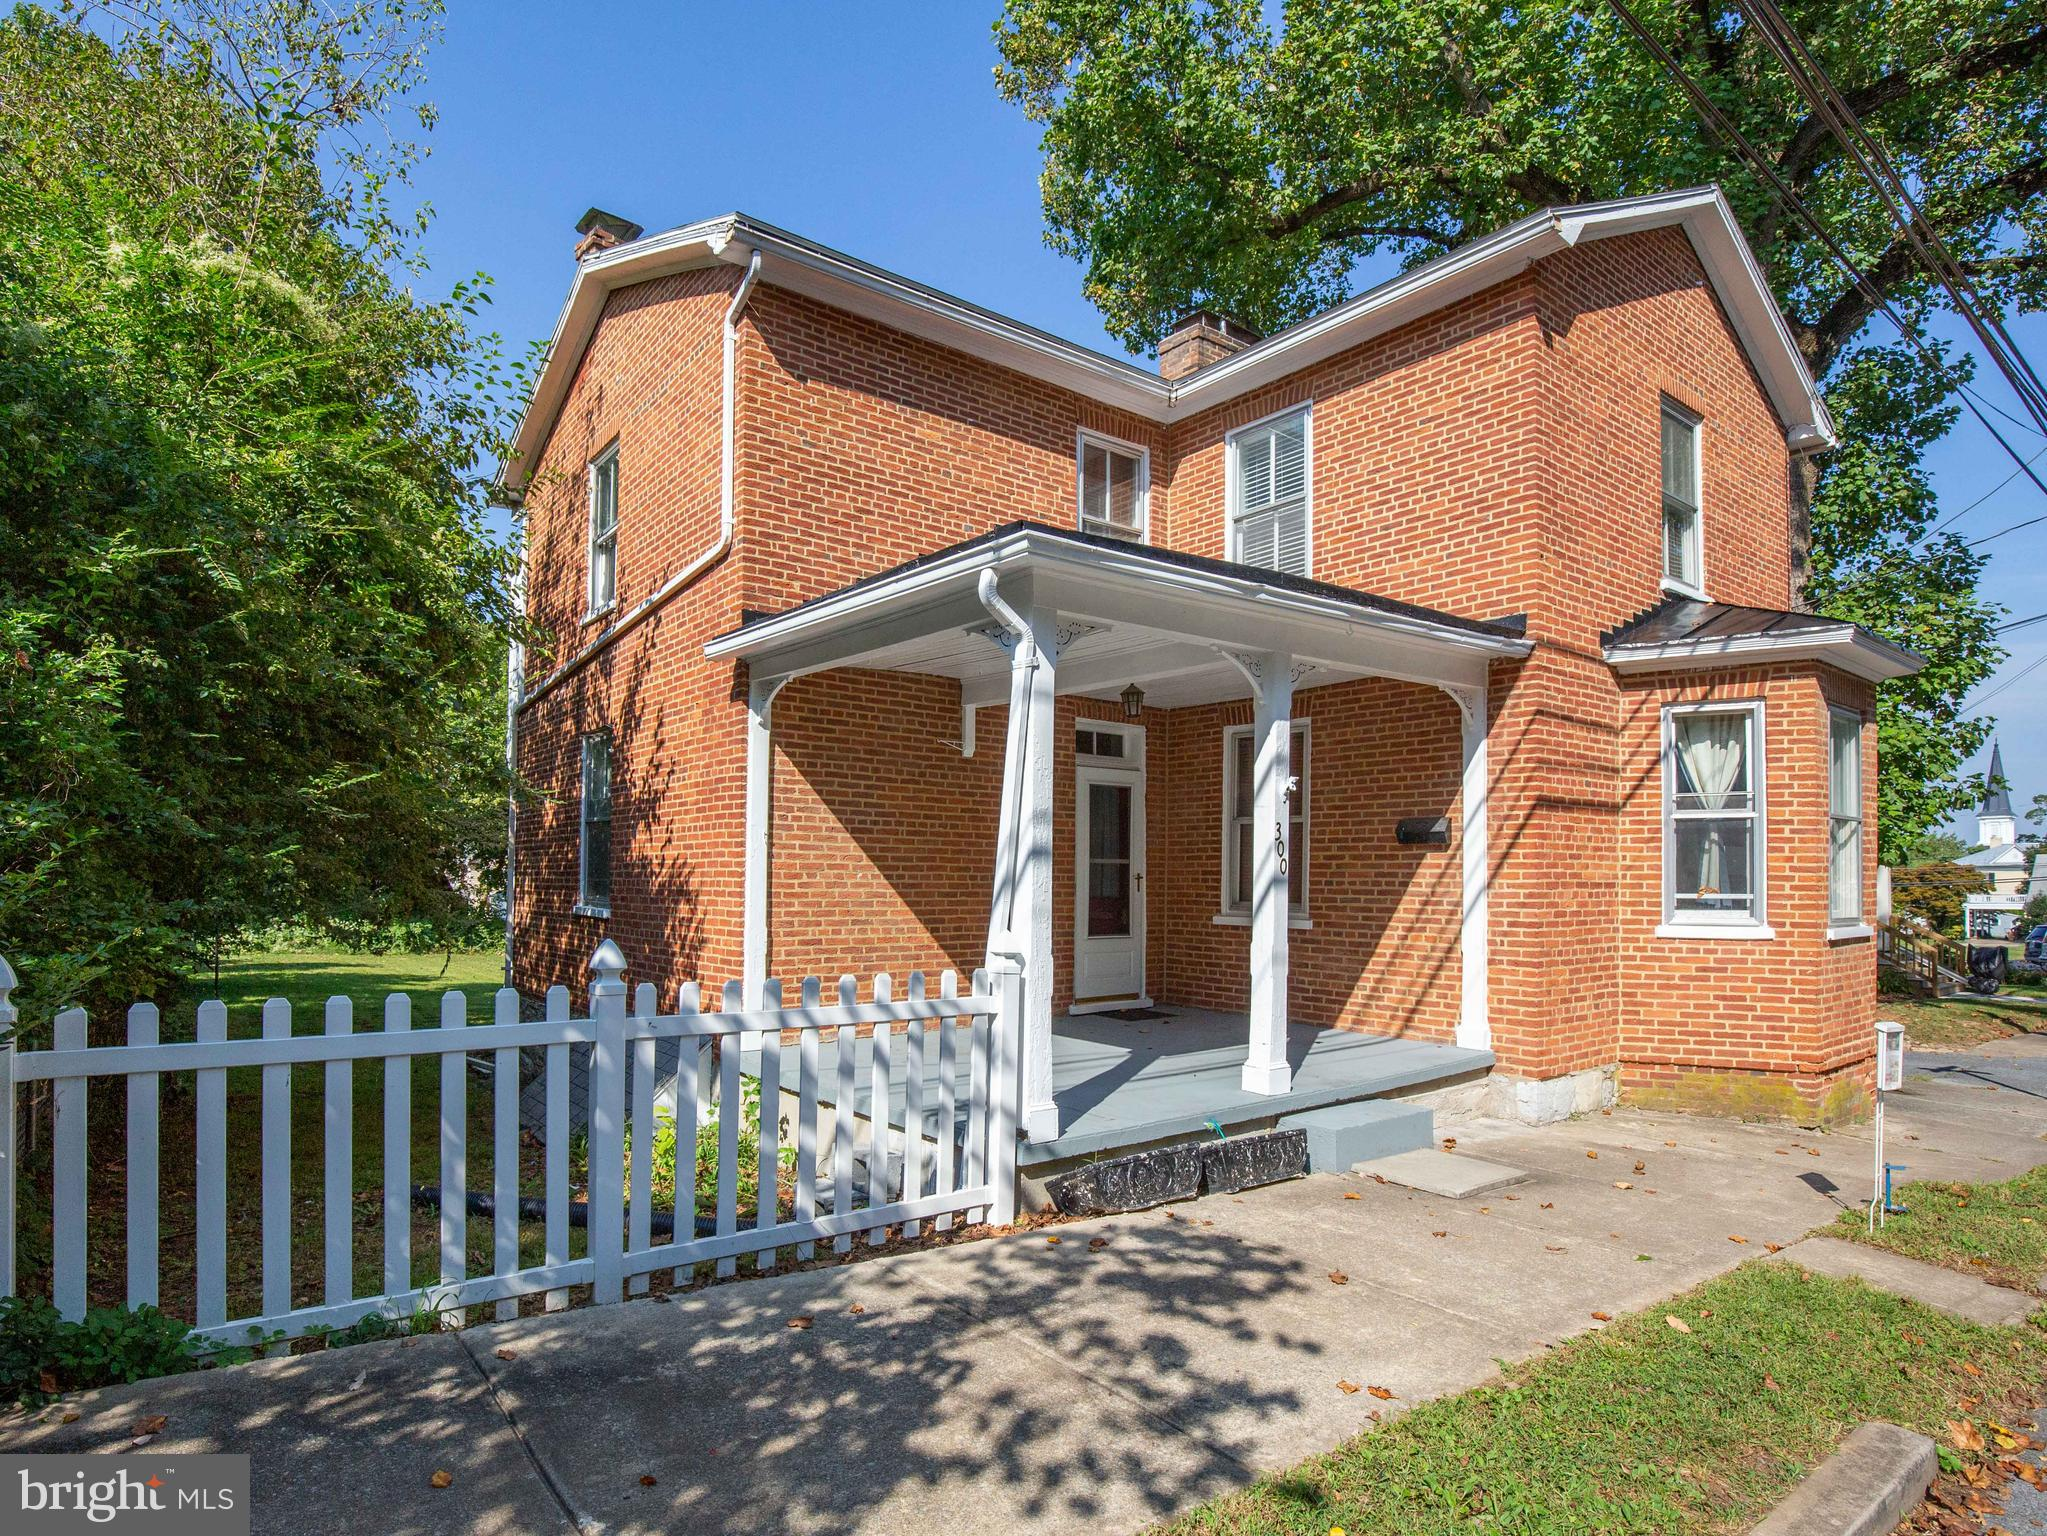 Charming brick home in the heart of Charles Town with all you would expect from a well-preserved 187